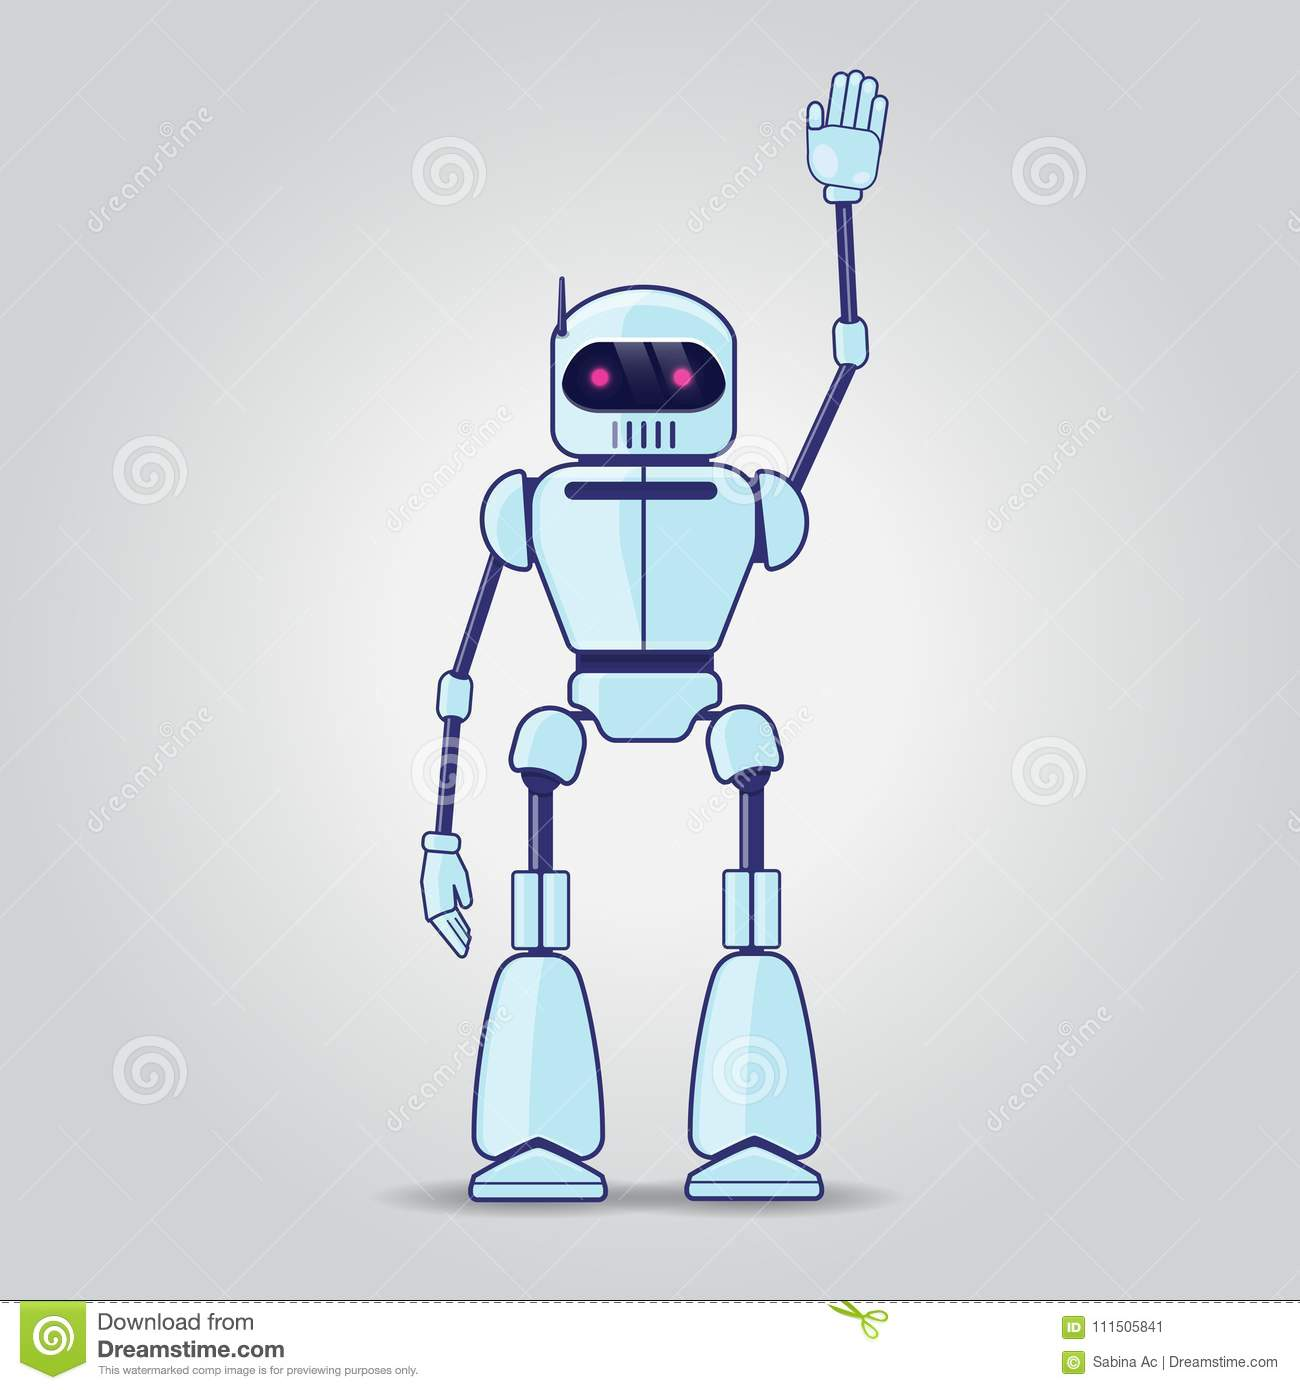 Robot character on gray background